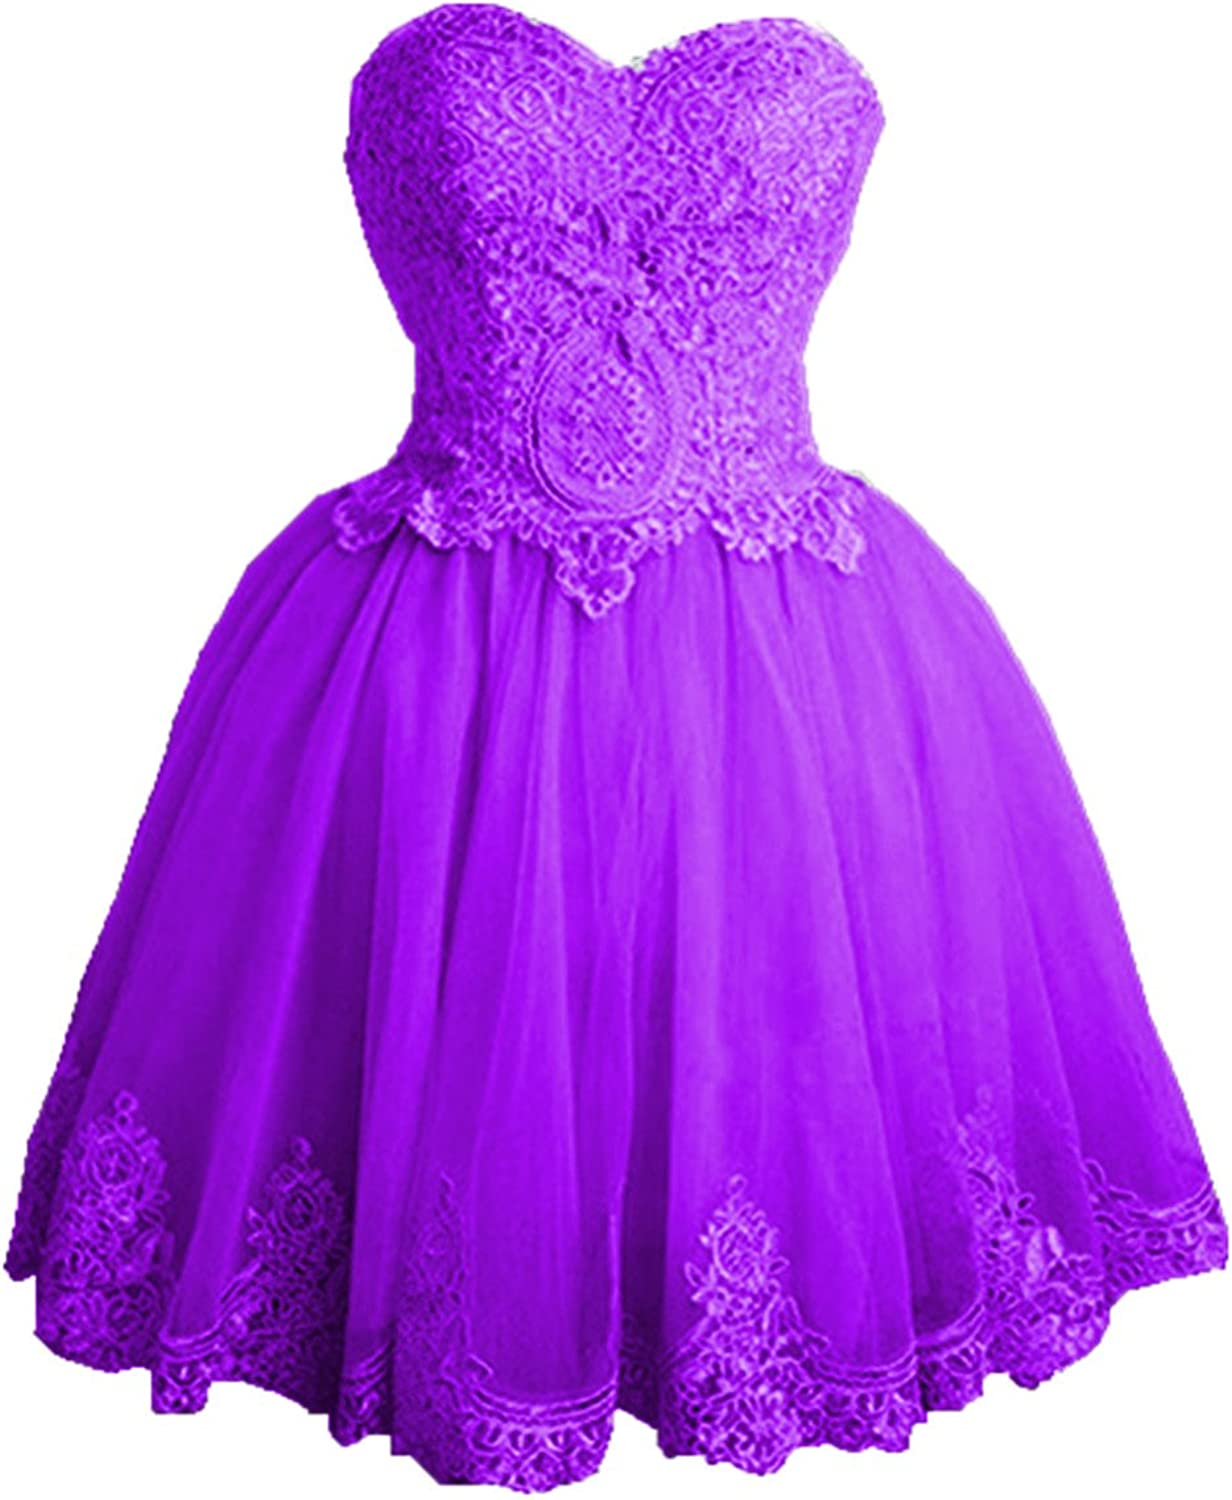 Libaosha Strapless Sweetheart Neck Lace Appliqued Homecoming Dresses Short Prom Dresses